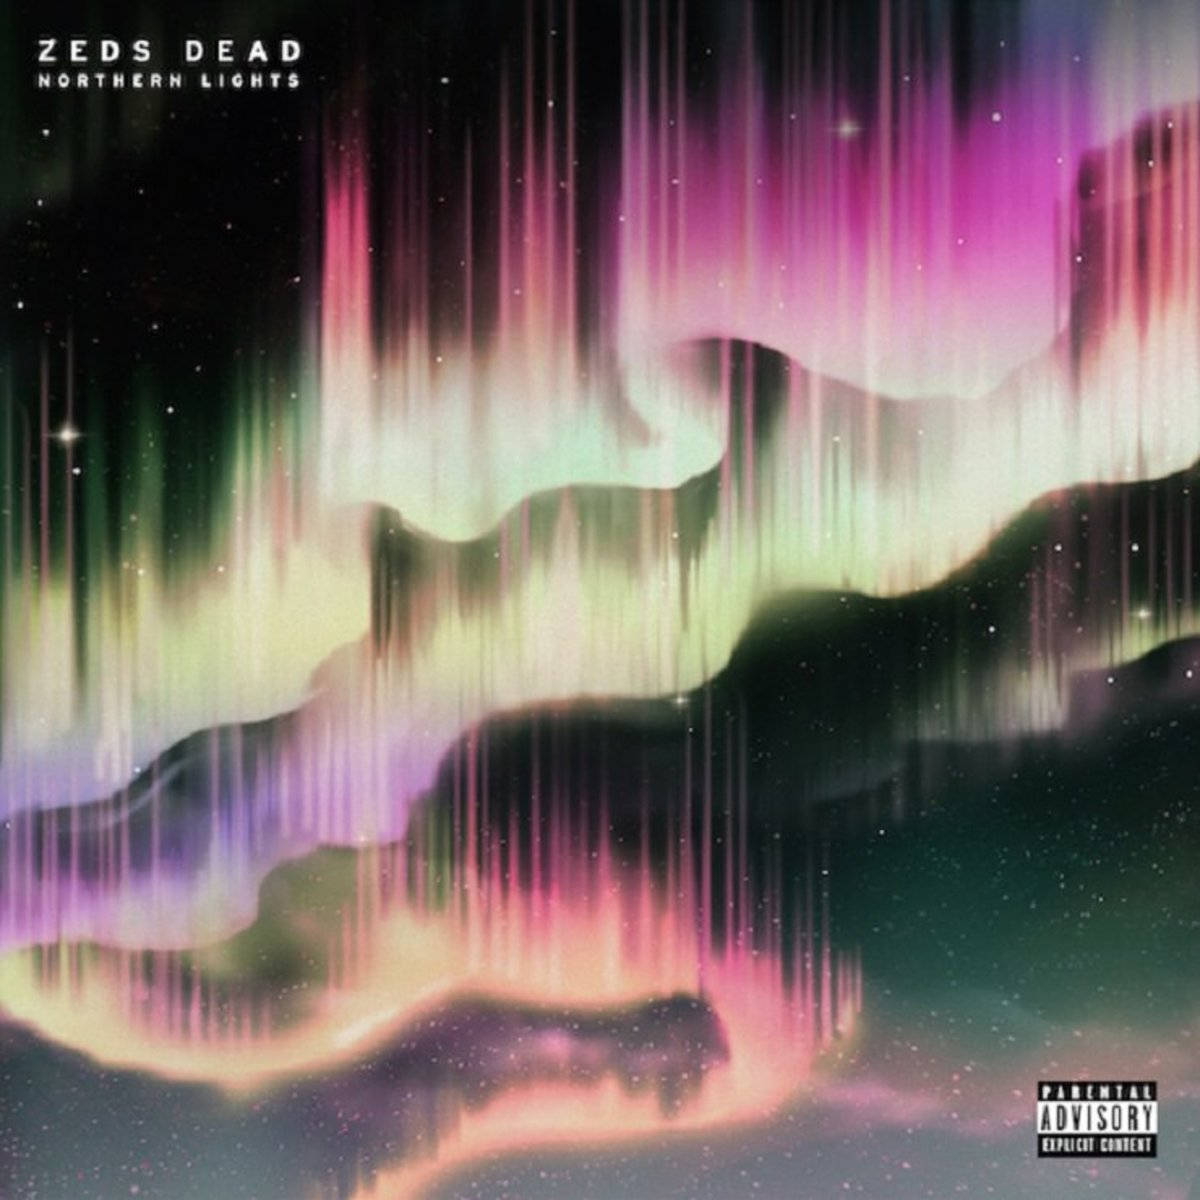 Zeds-Dead-Detail-Northern-Lights-Premiere-Stardust-Single-with-Twin-Shadow.jpg